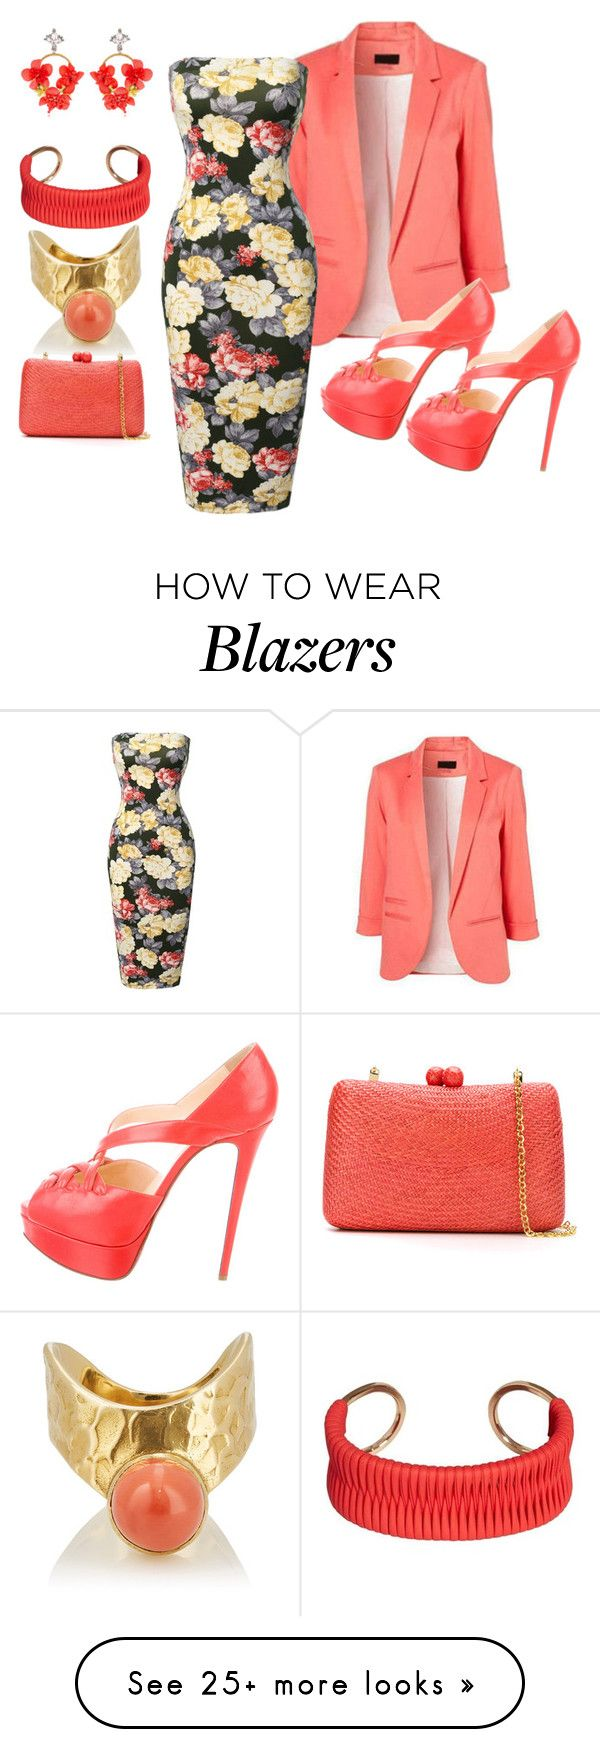 """Untitled #2333"" by deirdre35 on Polyvore featuring Christian Louboutin, VANINA, MANGO and Serpui"